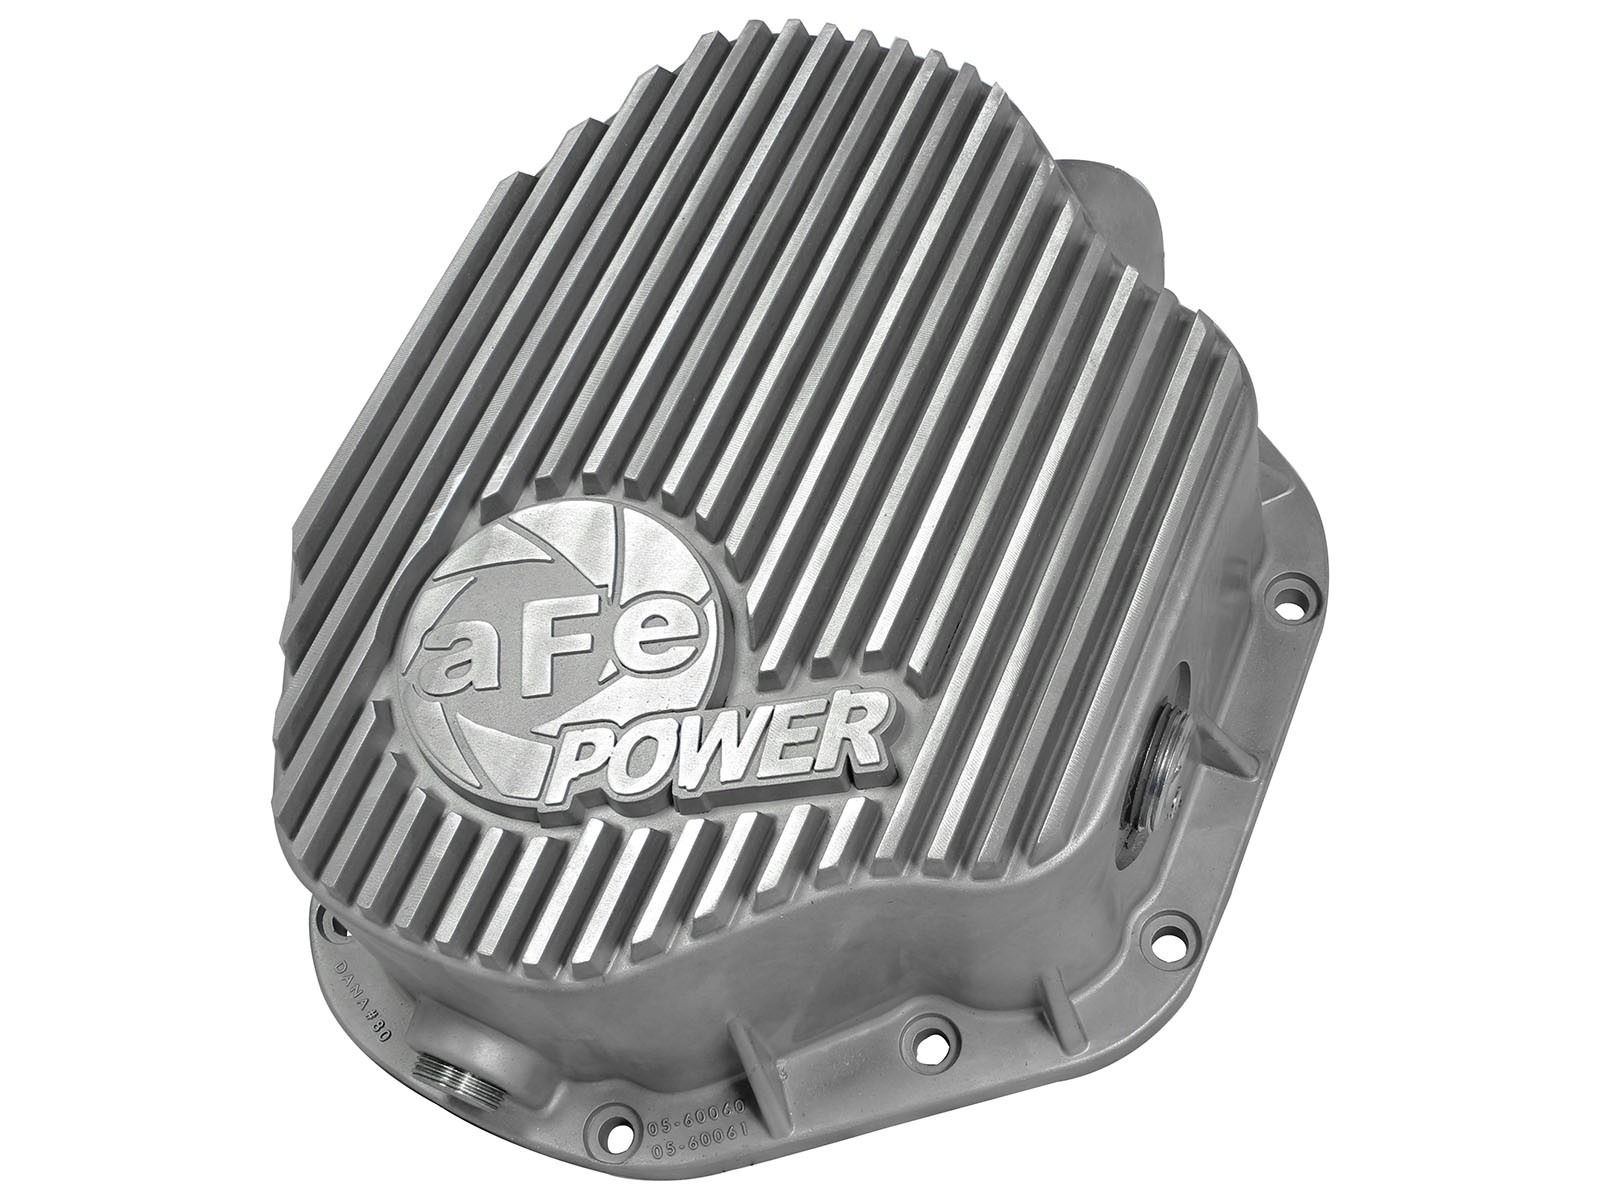 aFe POWER 46-70030 Rear Differential Cover, Raw Finish; Street Series